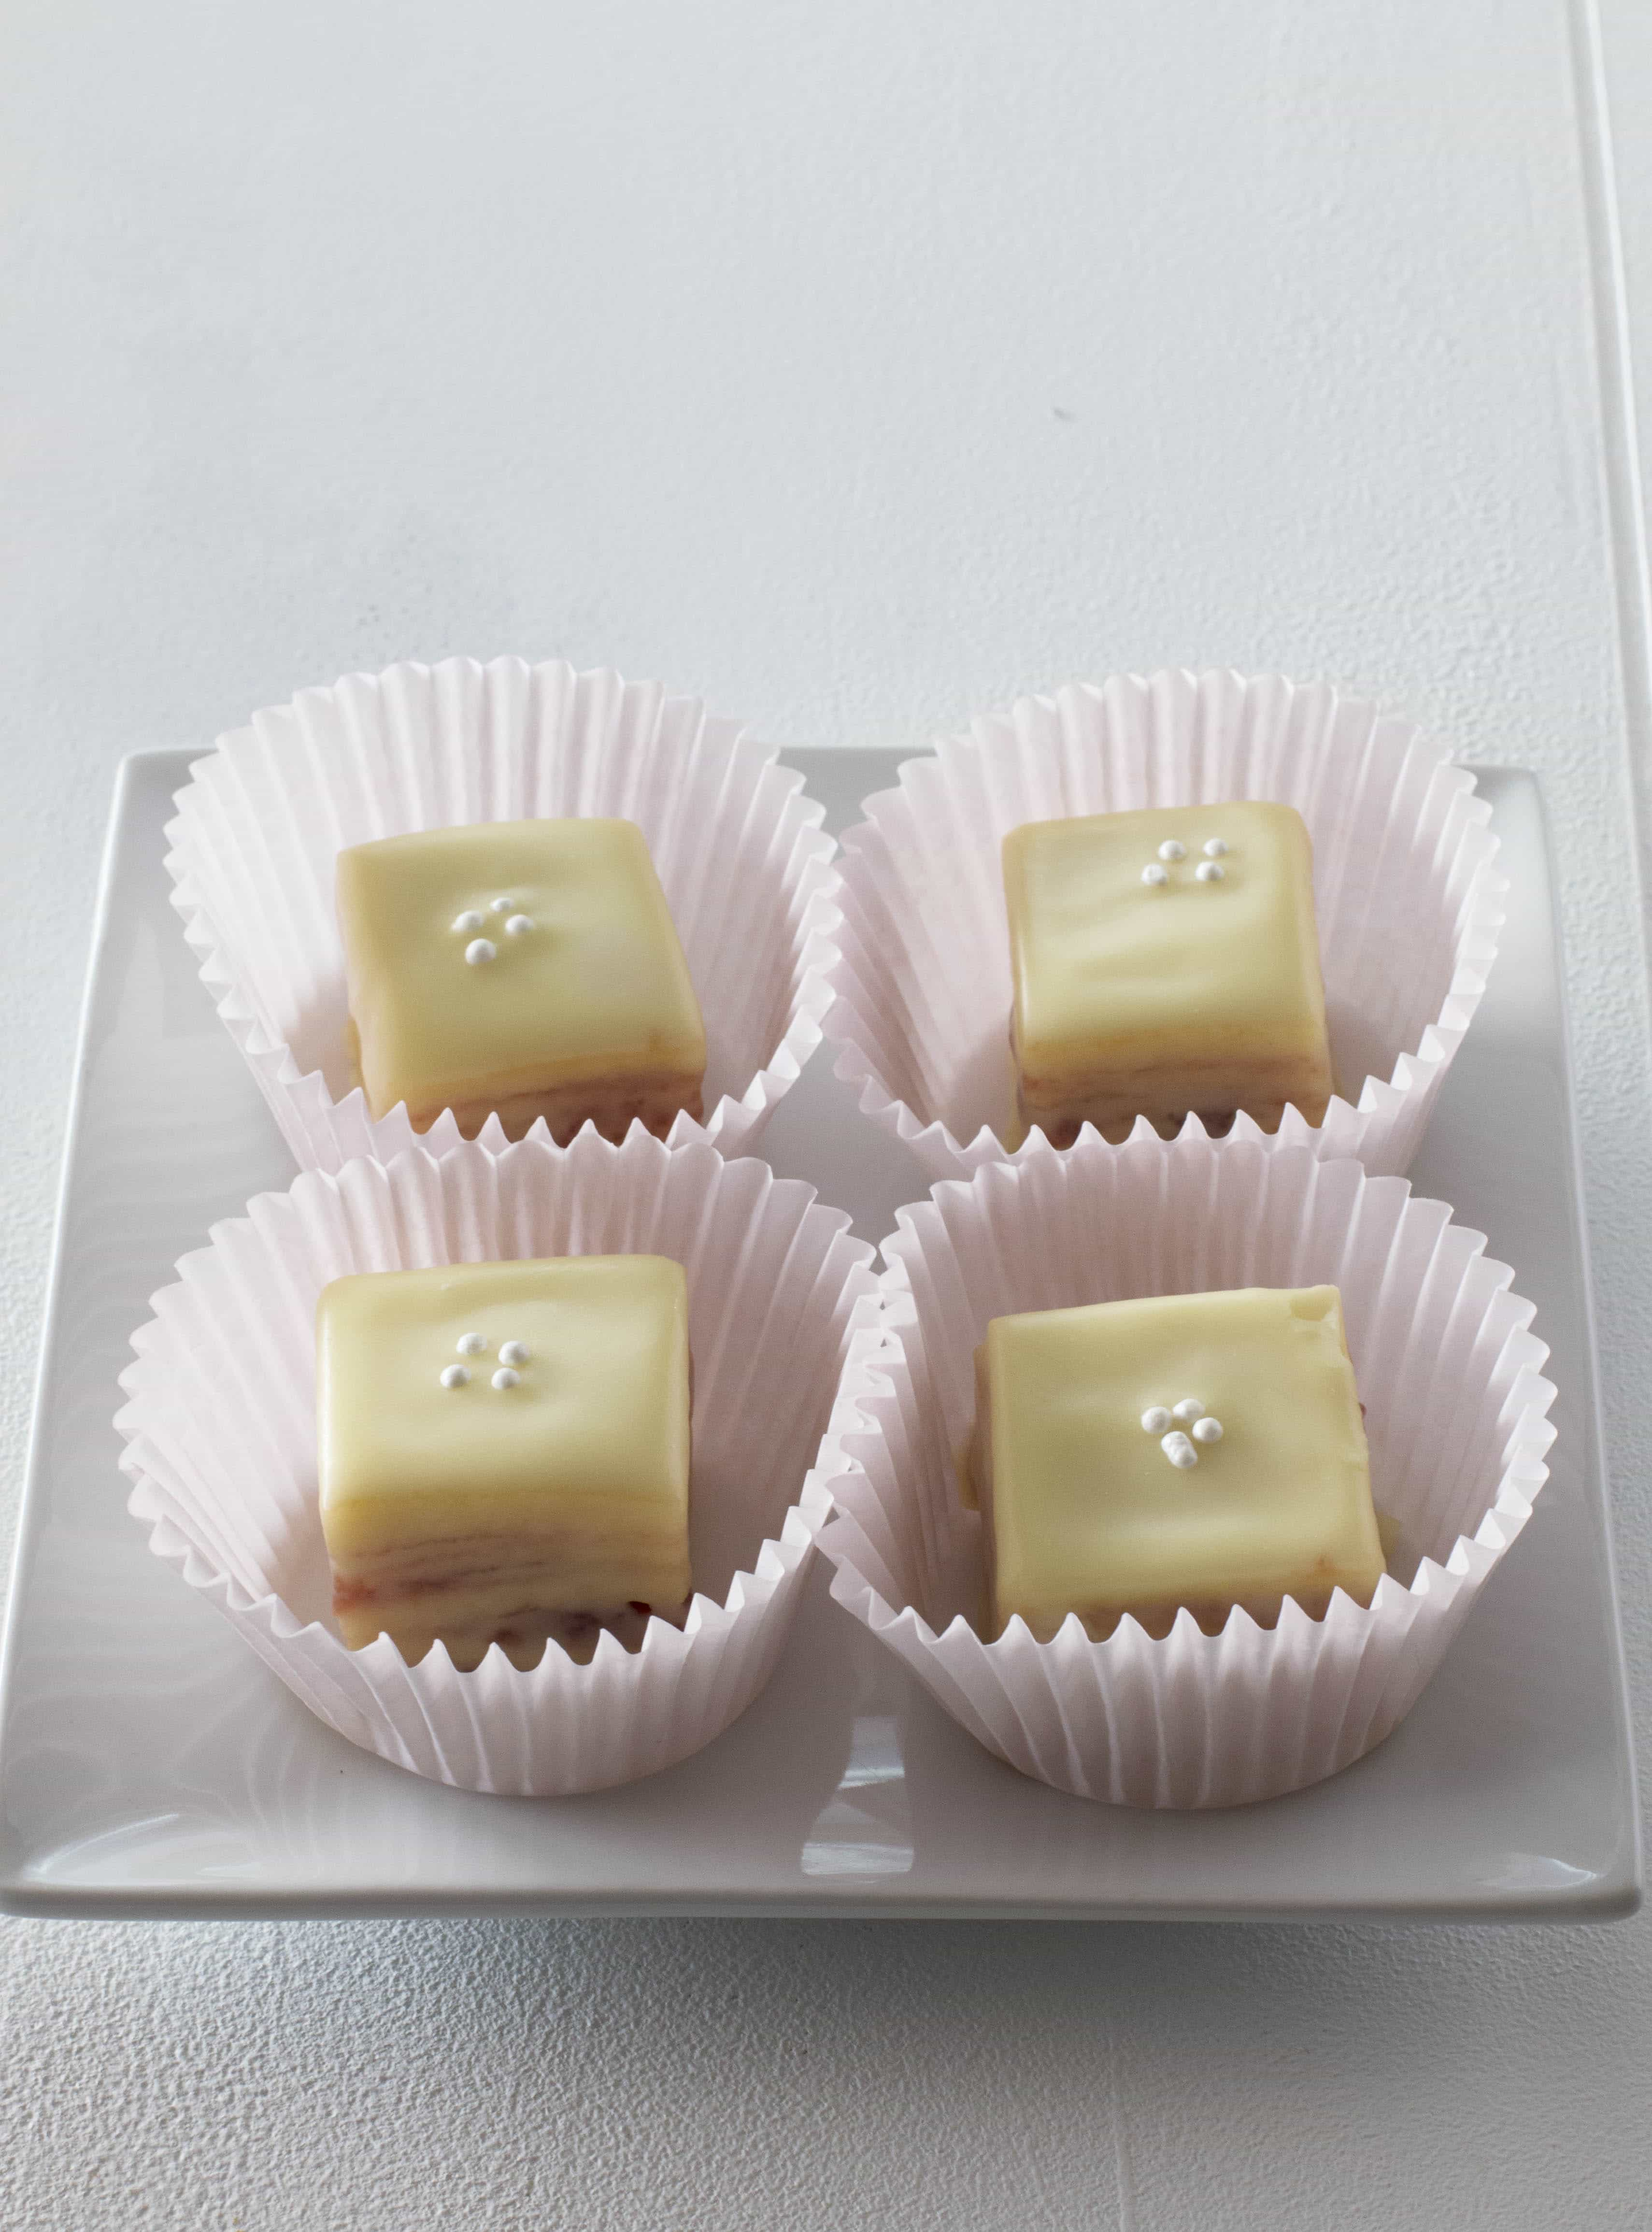 Where to buy petit fours #13